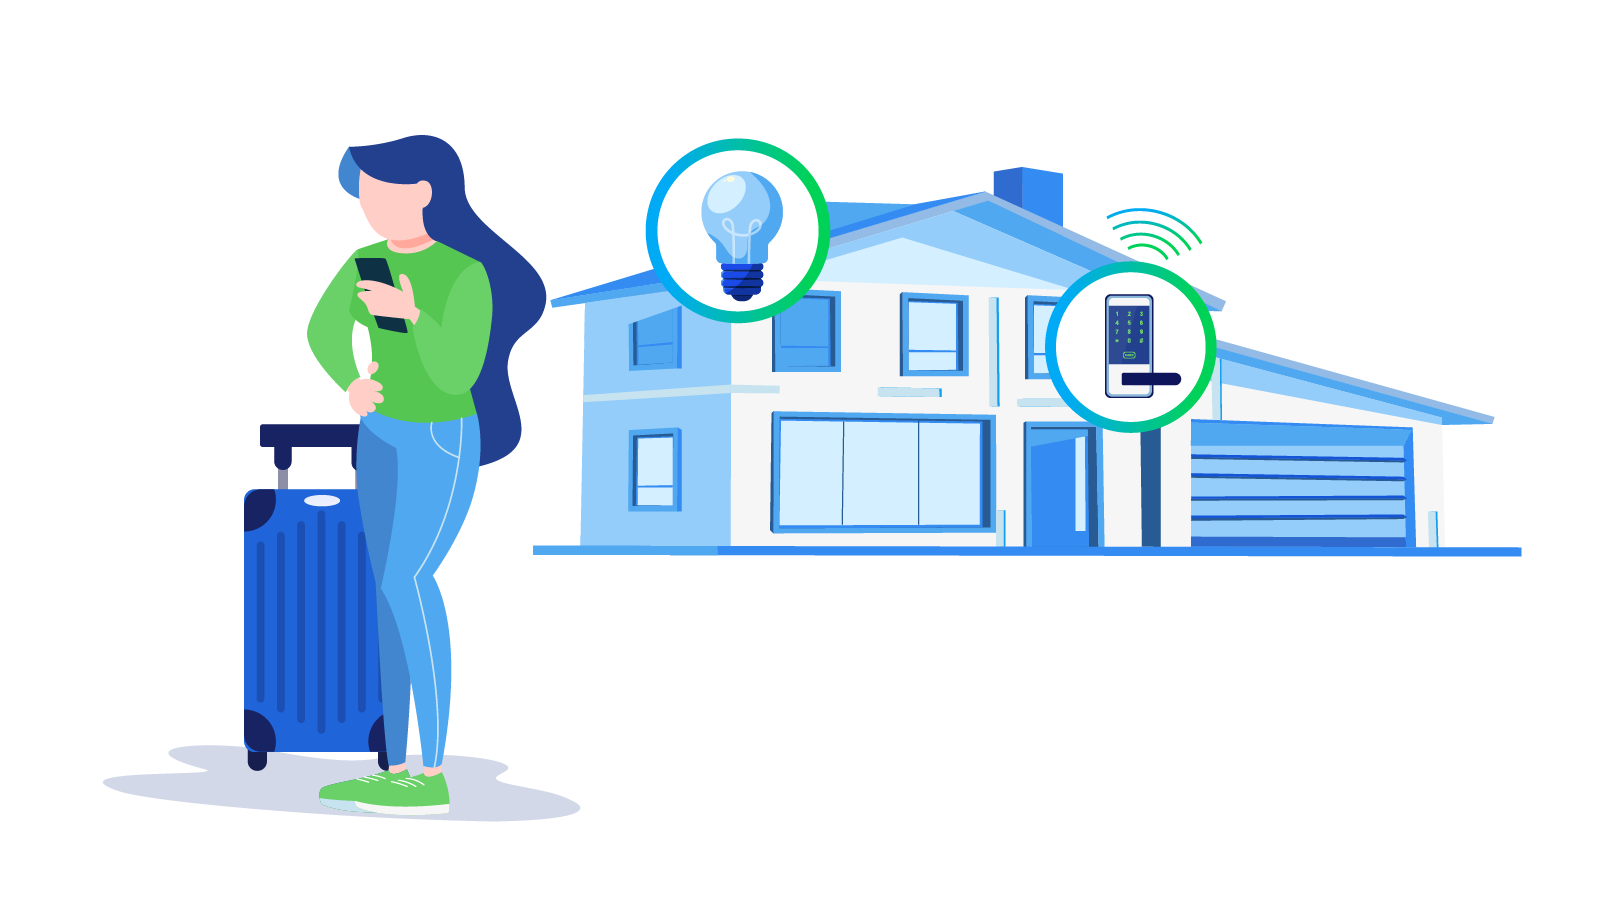 Control Your Smart Home Features from Anywhere